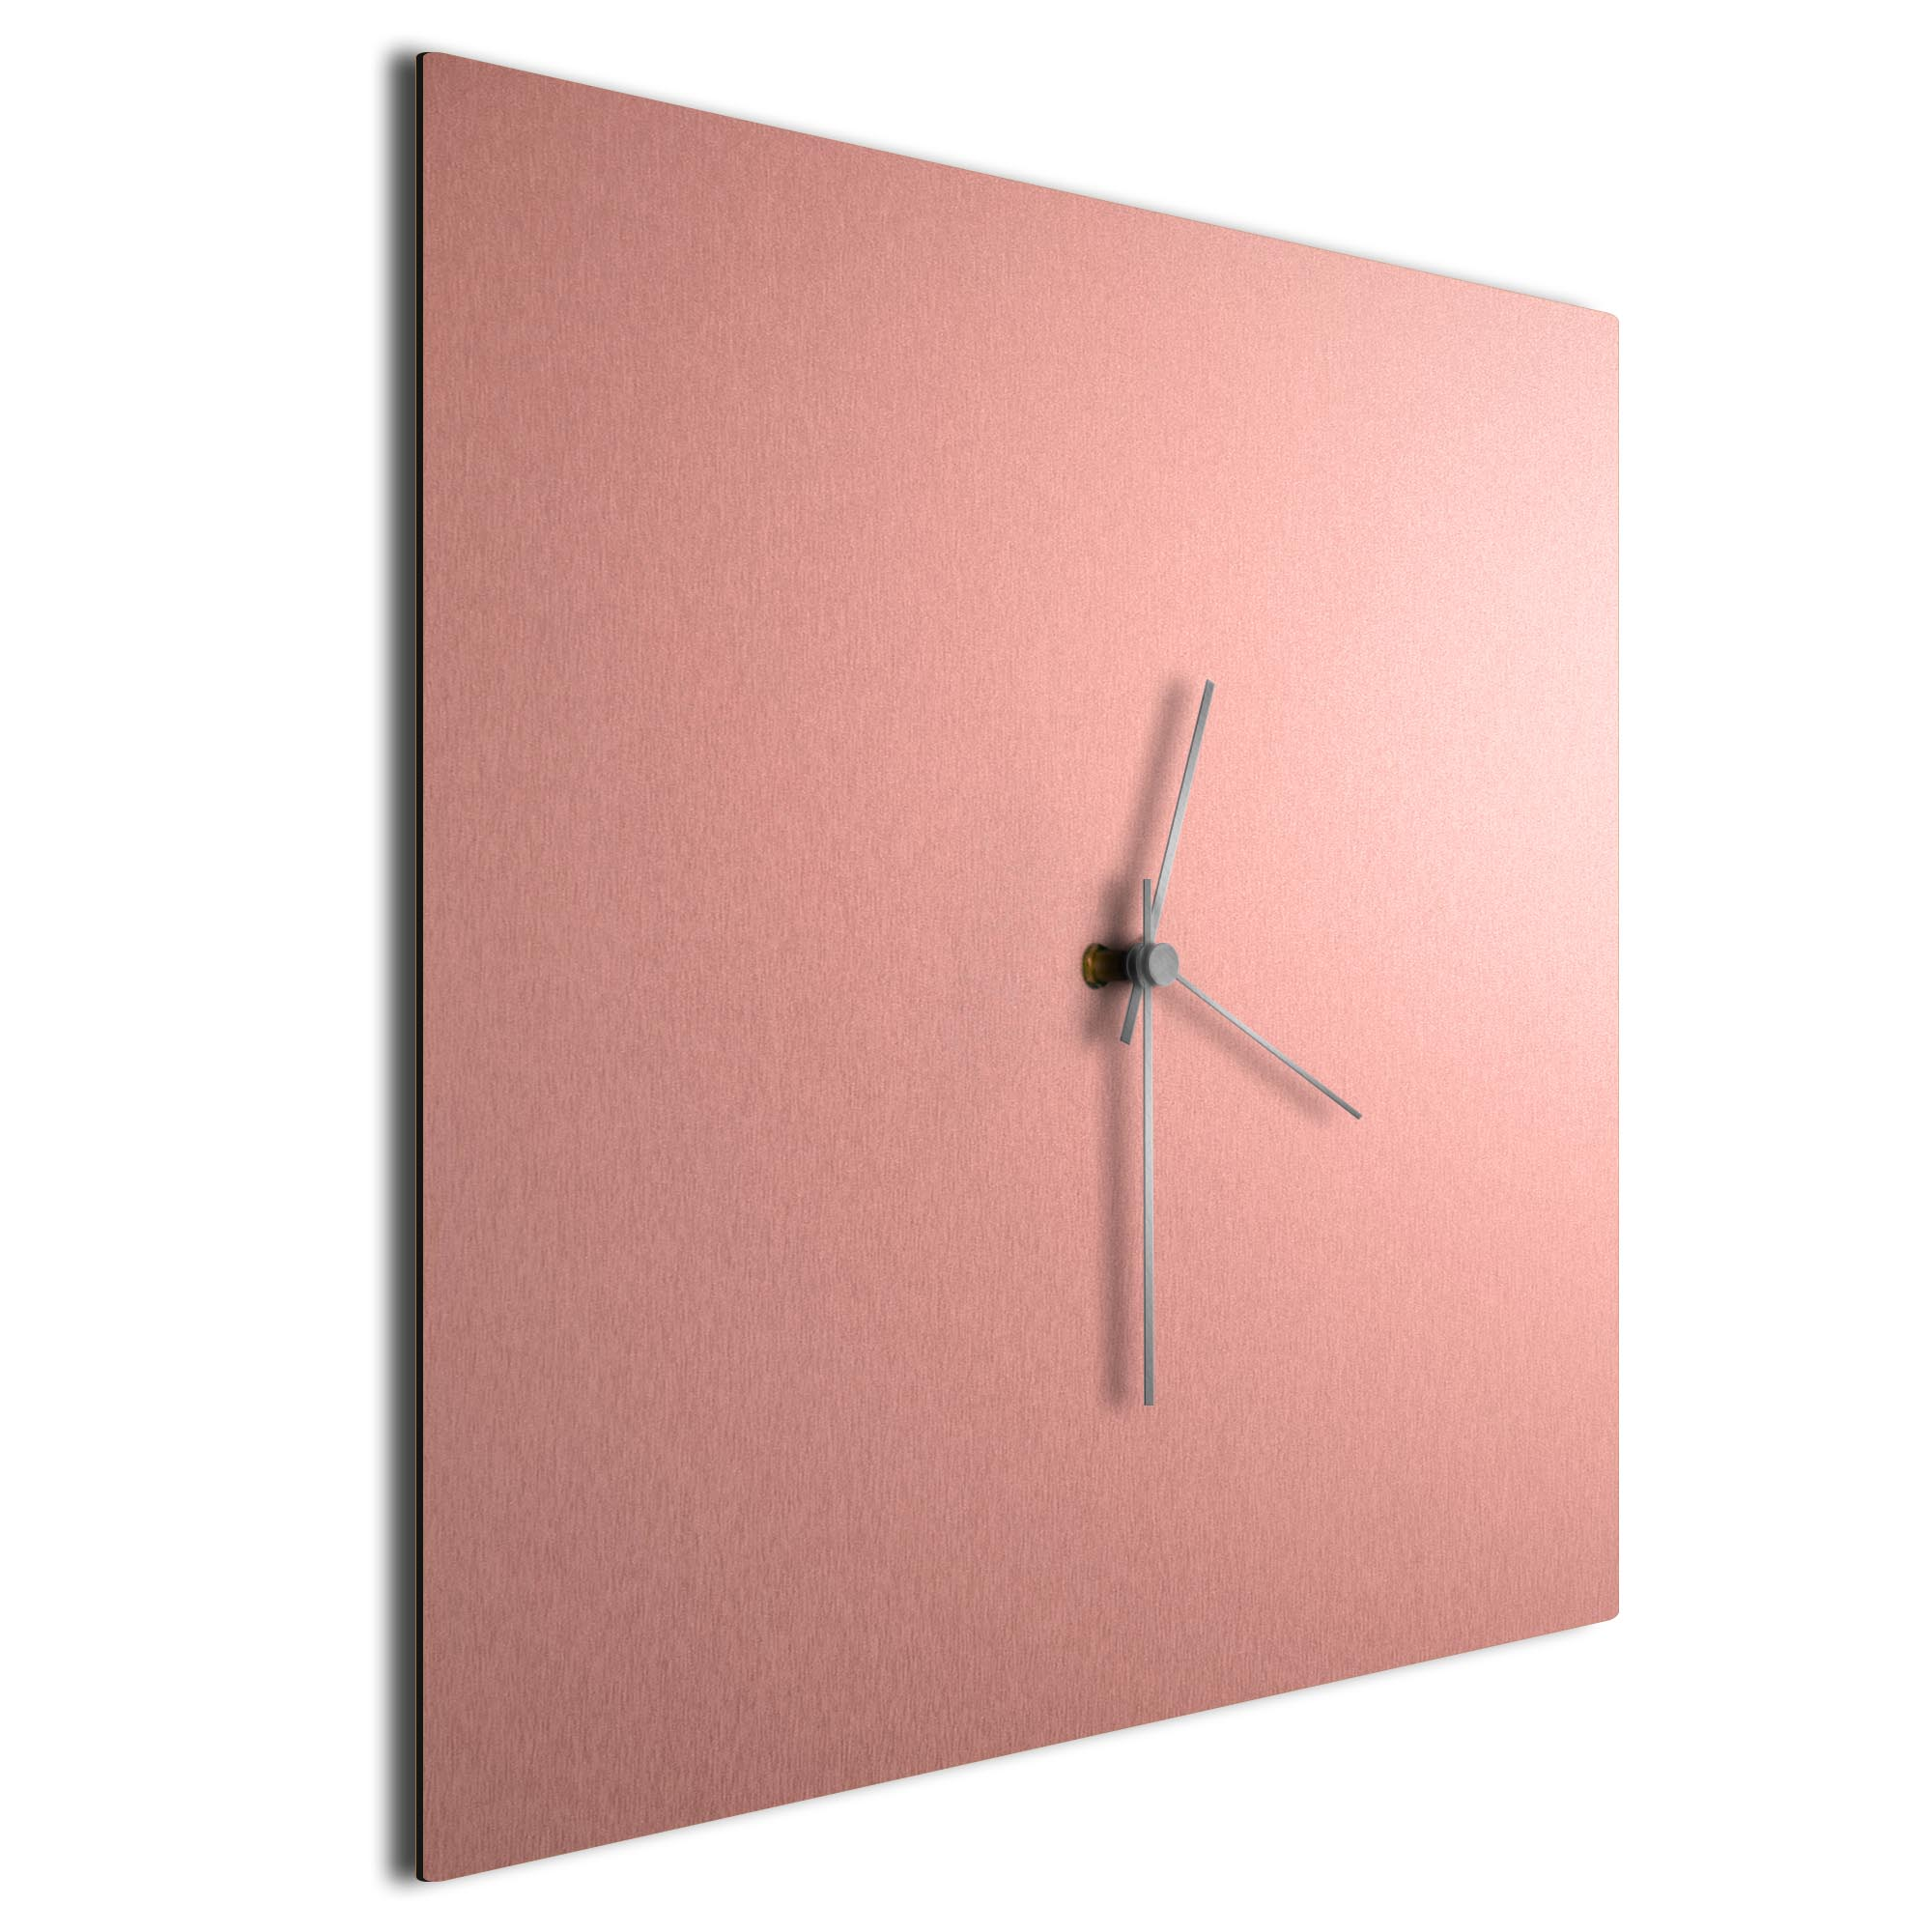 Coppersmith Square Clock Large Silver - Image 2